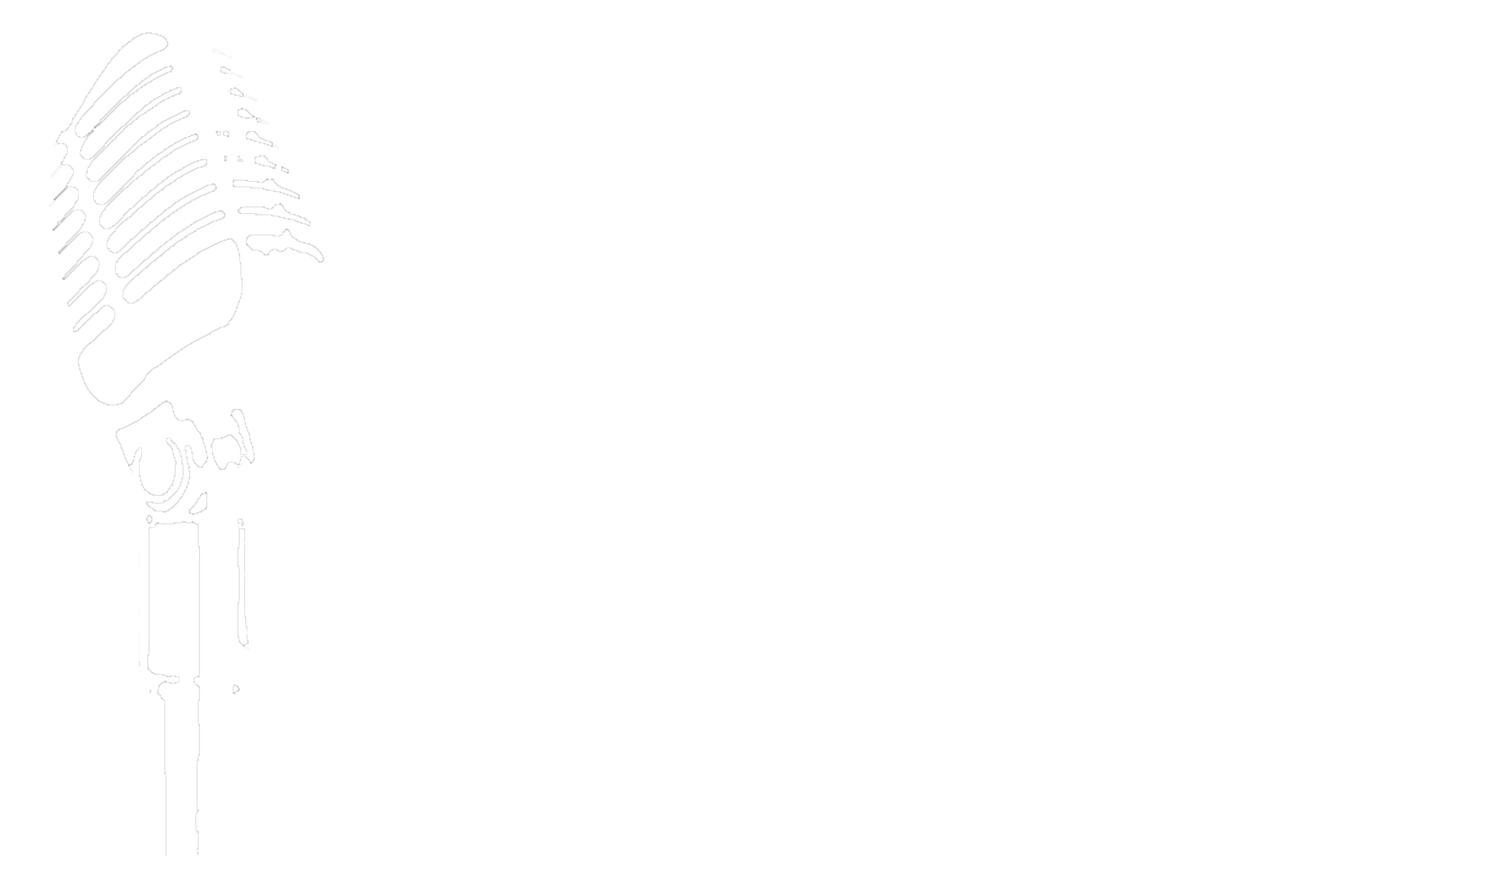 Self Narrate